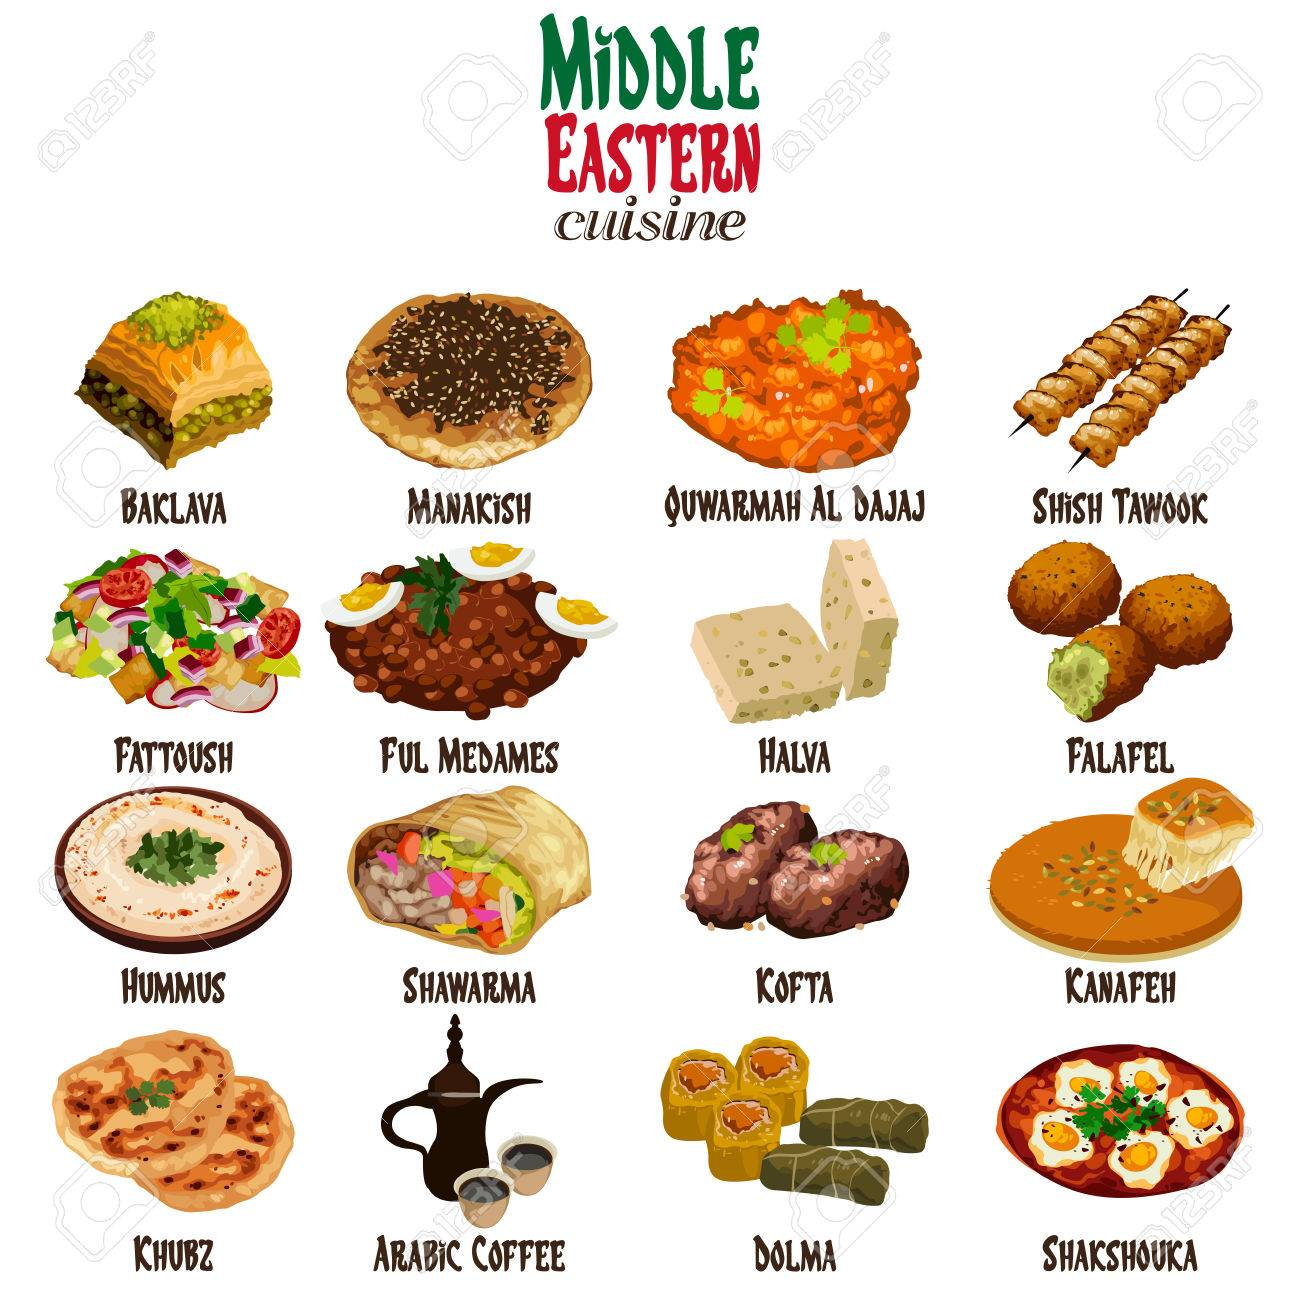 Cuisine Illustration a vector illustration of middle eastern cuisine royalty free